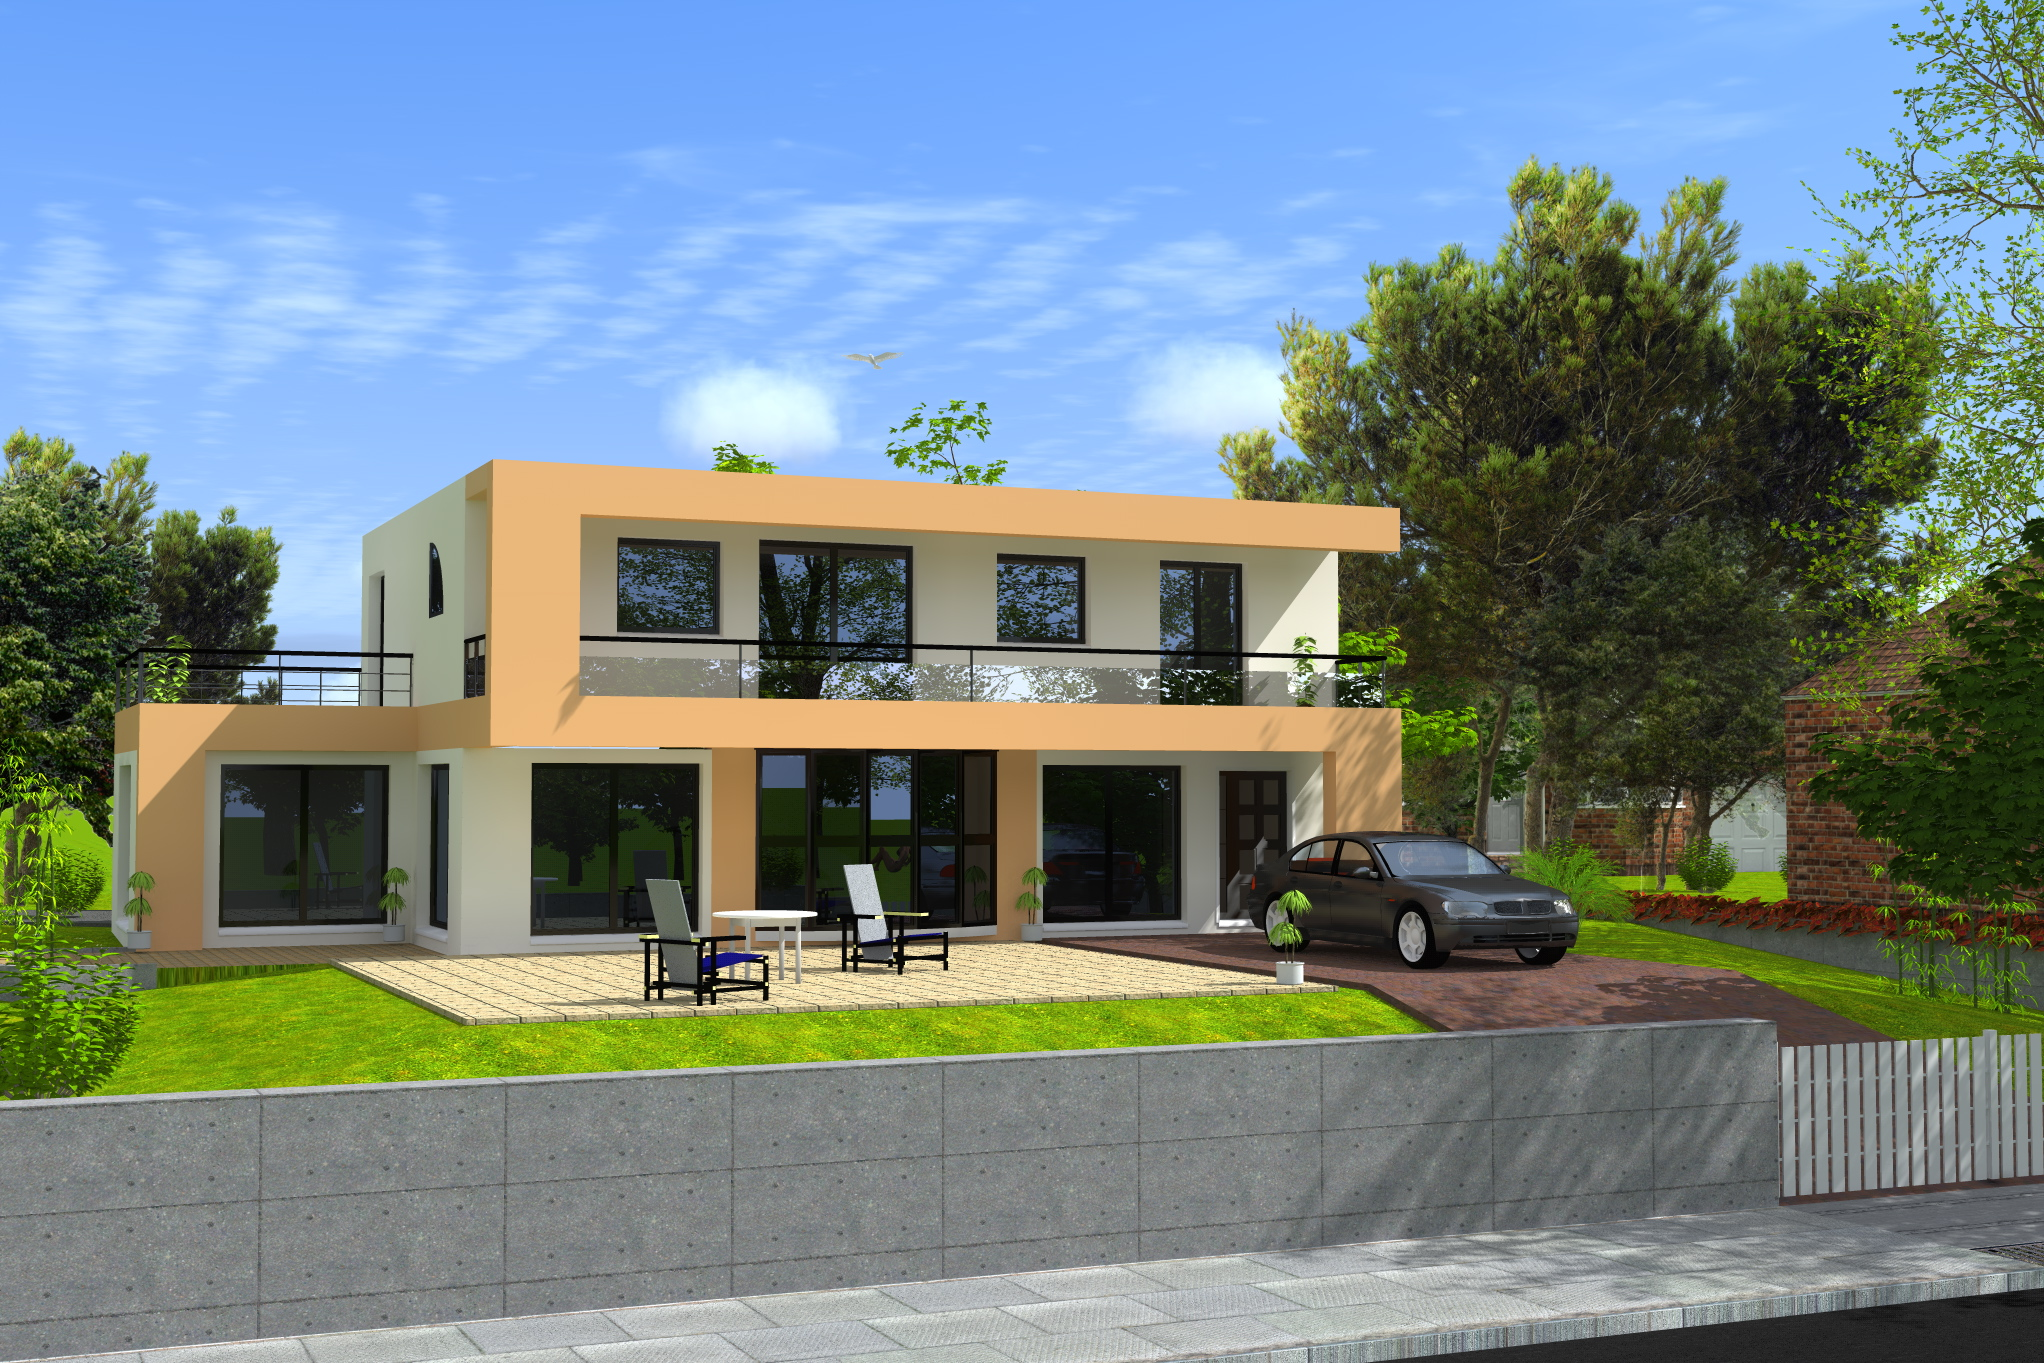 Construction de maison 3d 28 images maison 183 3d 183 - Construction de maison 3d ...